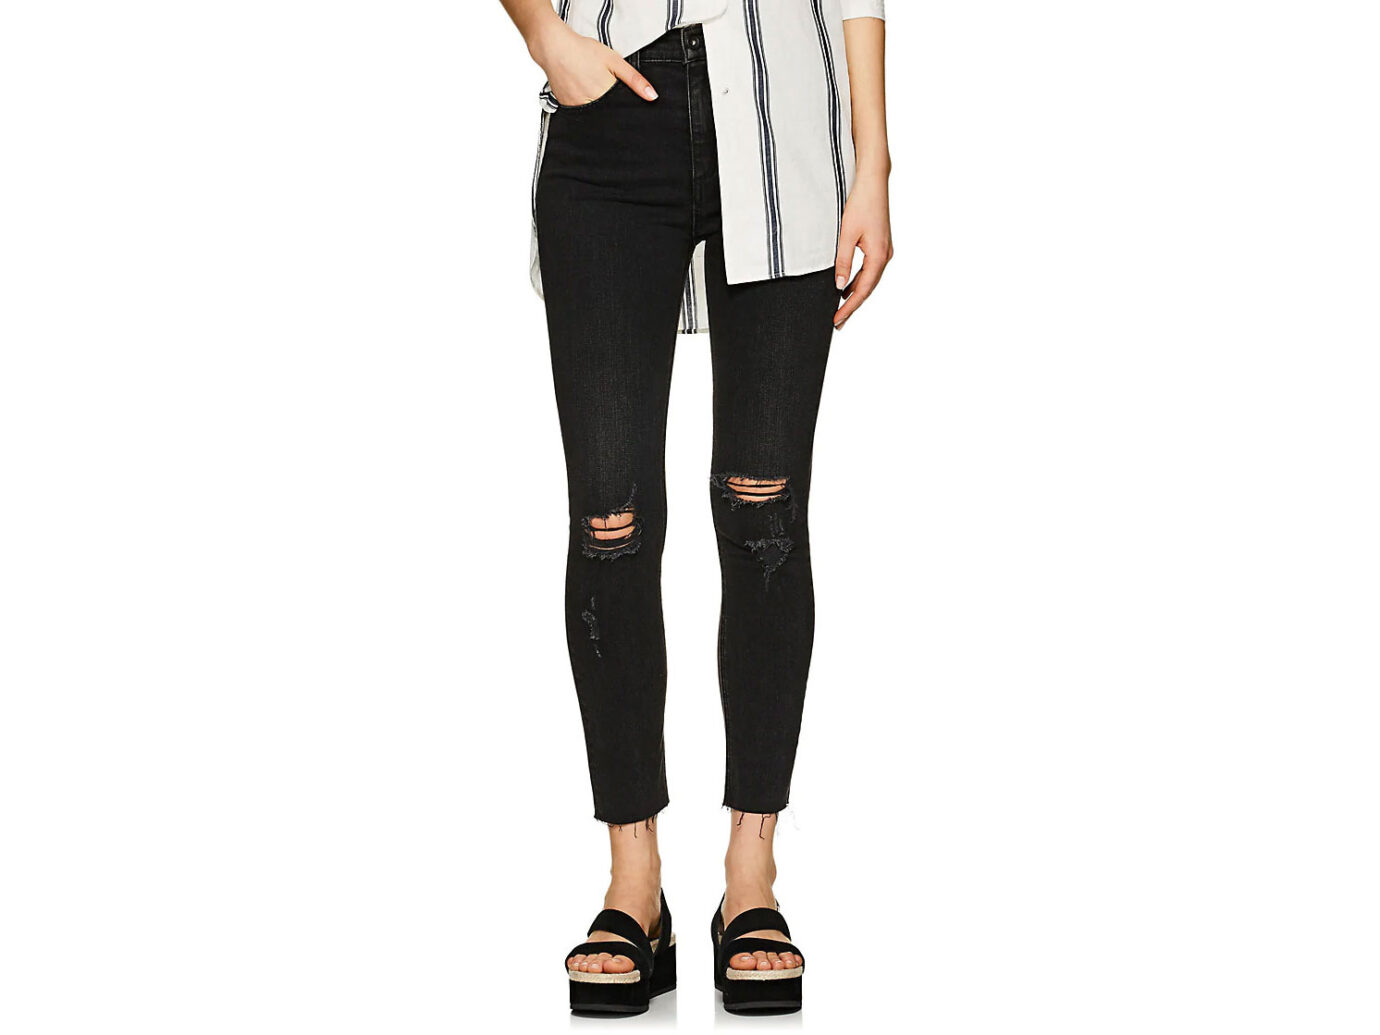 RAG & BONE High Rise Ankle Skinny Distressed Jeans